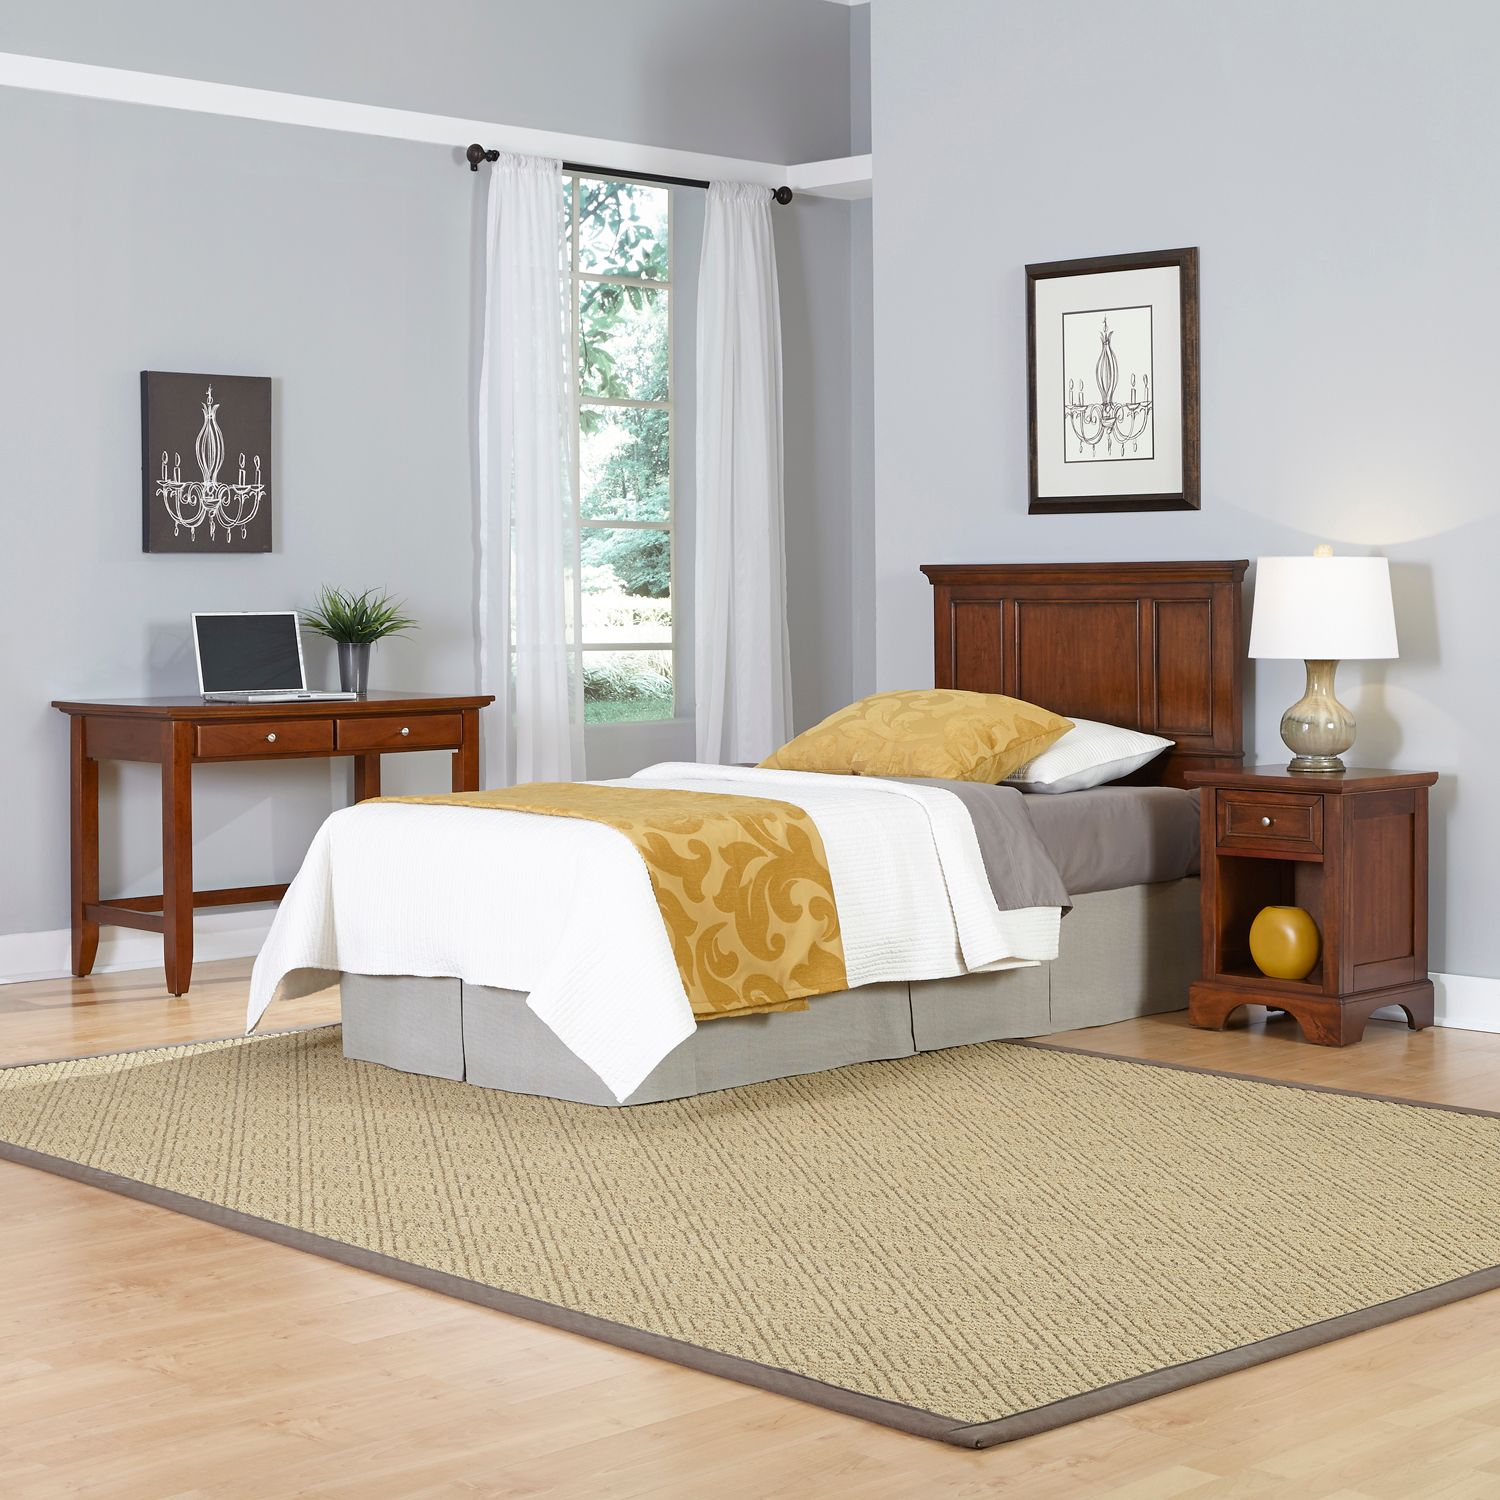 Best Home Styles piece Chesapeake Twin Bedroom Set